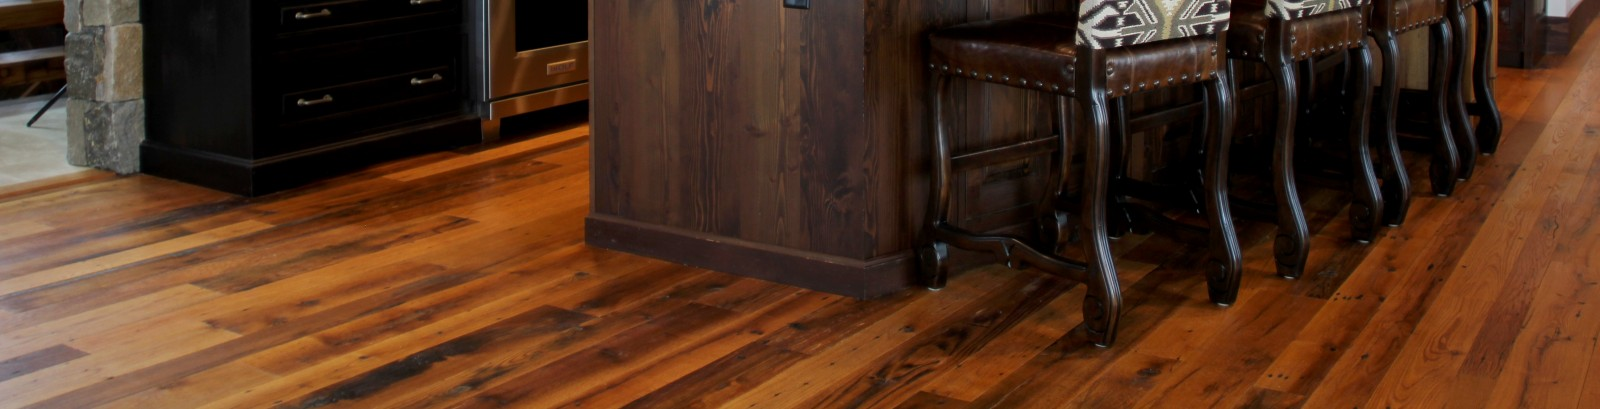 Reclaimed mixed oak flooring with a smooth finish but a beautifully rich character including knots, nail holes and some surface checks